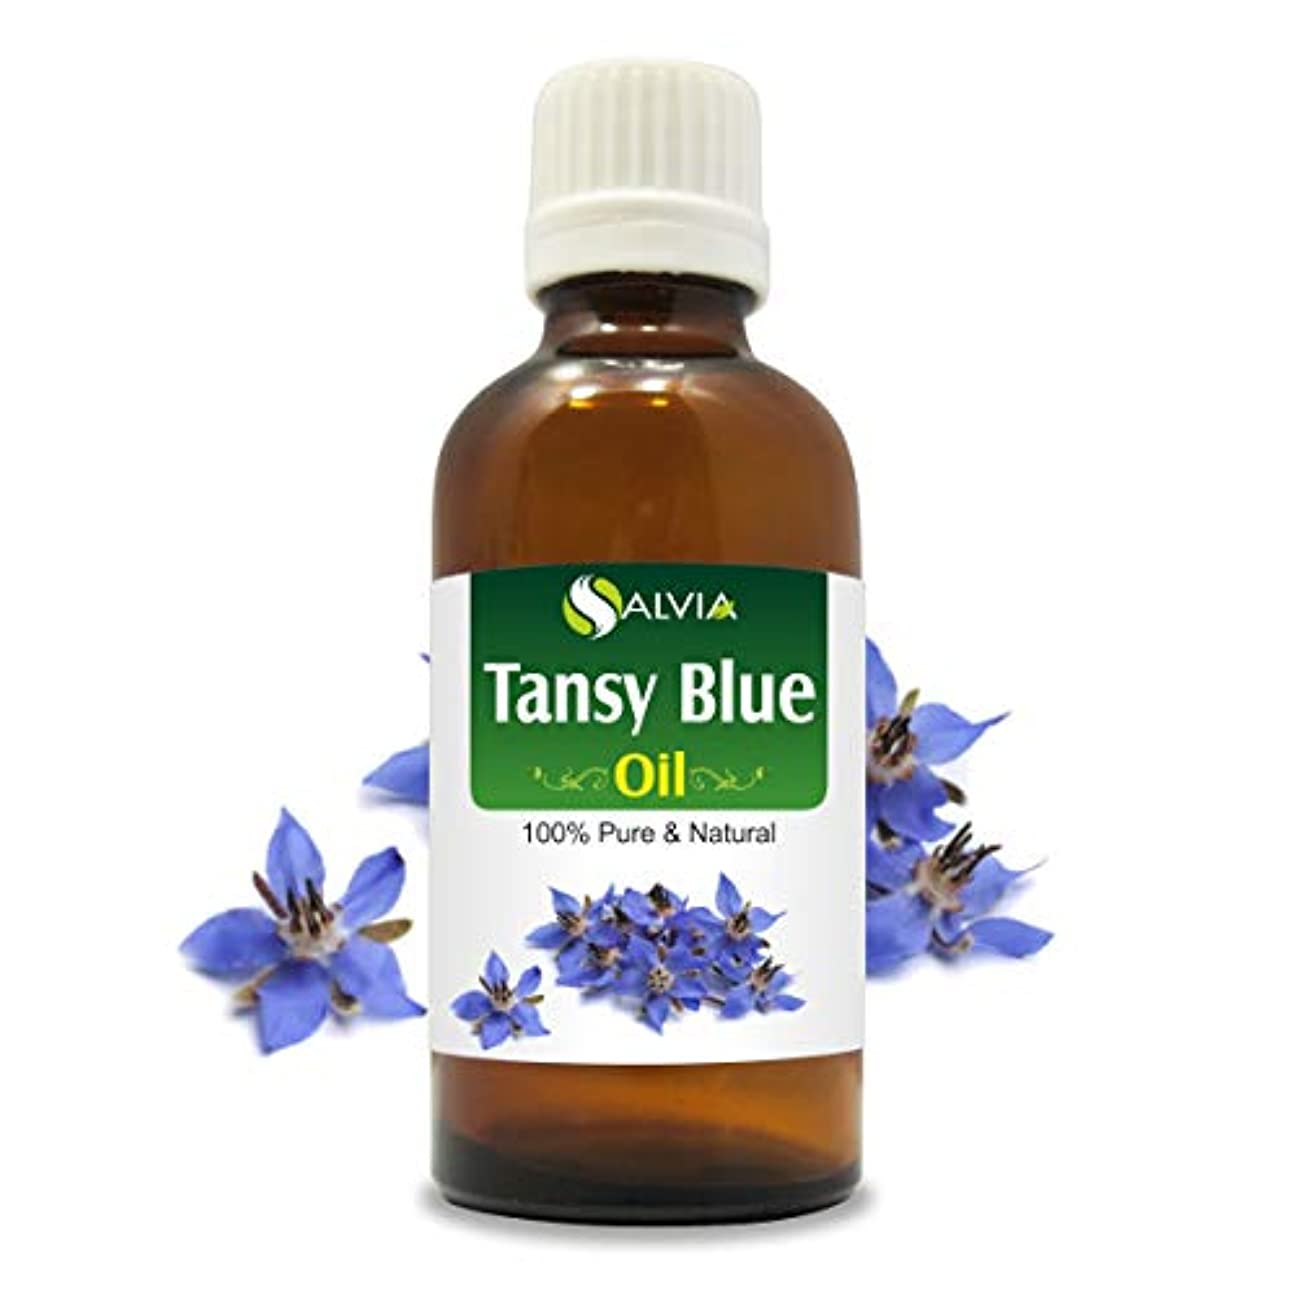 観光に行く役に立つ輪郭Tansy Blue Oil (Tanacetum annuum) 100% Natural Pure Undiluted Uncut Essential Oil 30ml